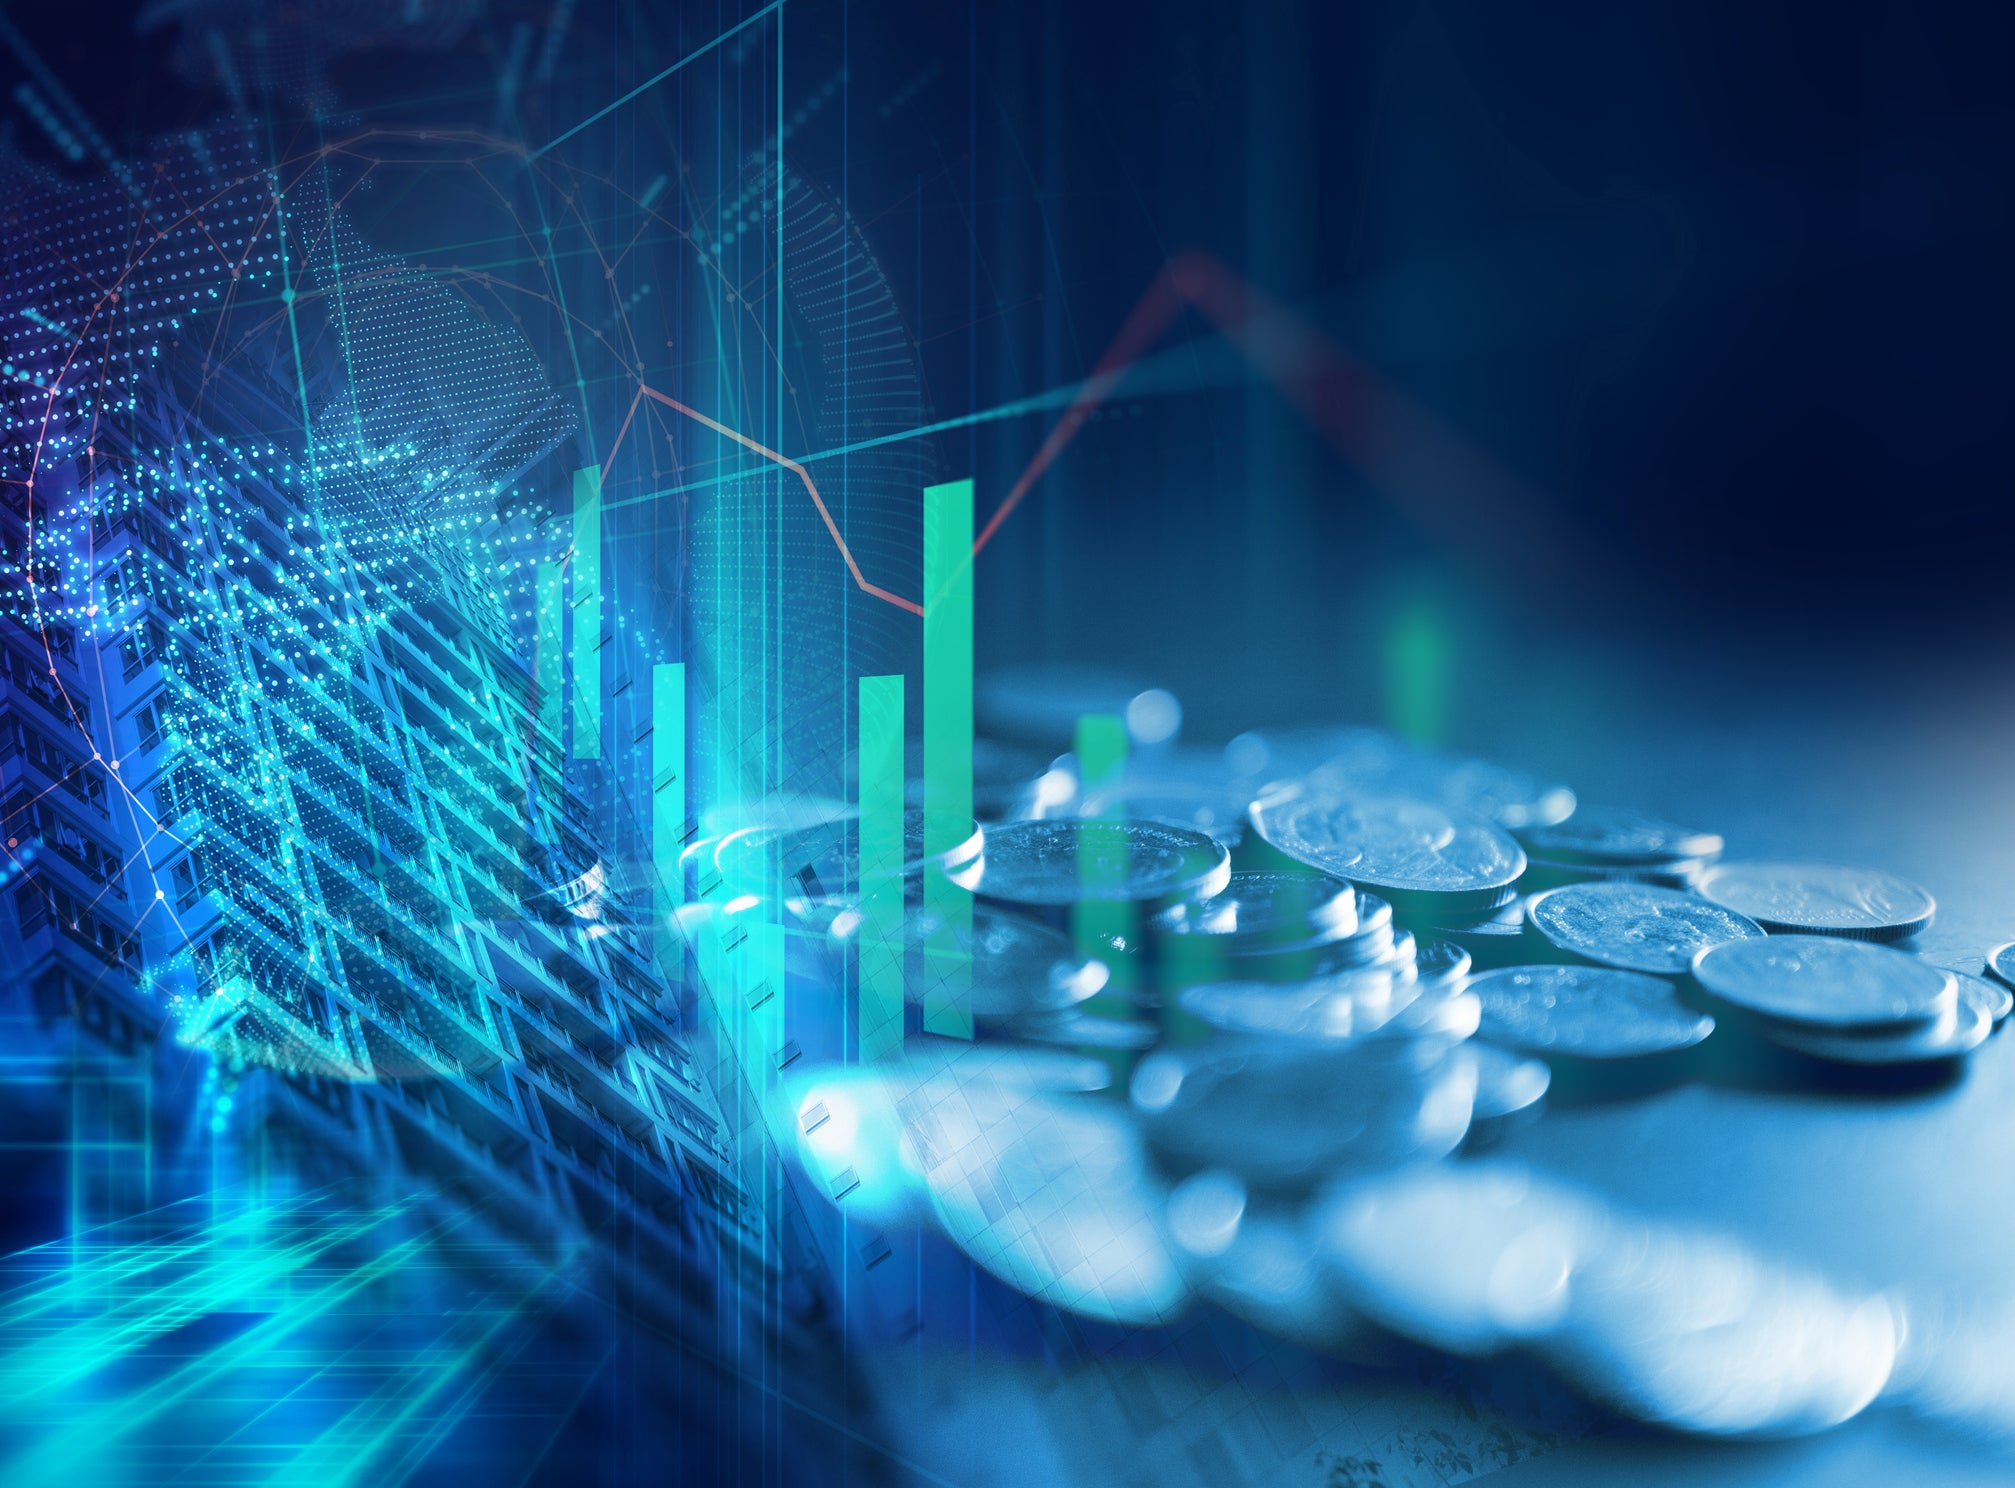 3 Tech Stocks With Dividend Yields Above 5% | The Motley Fool